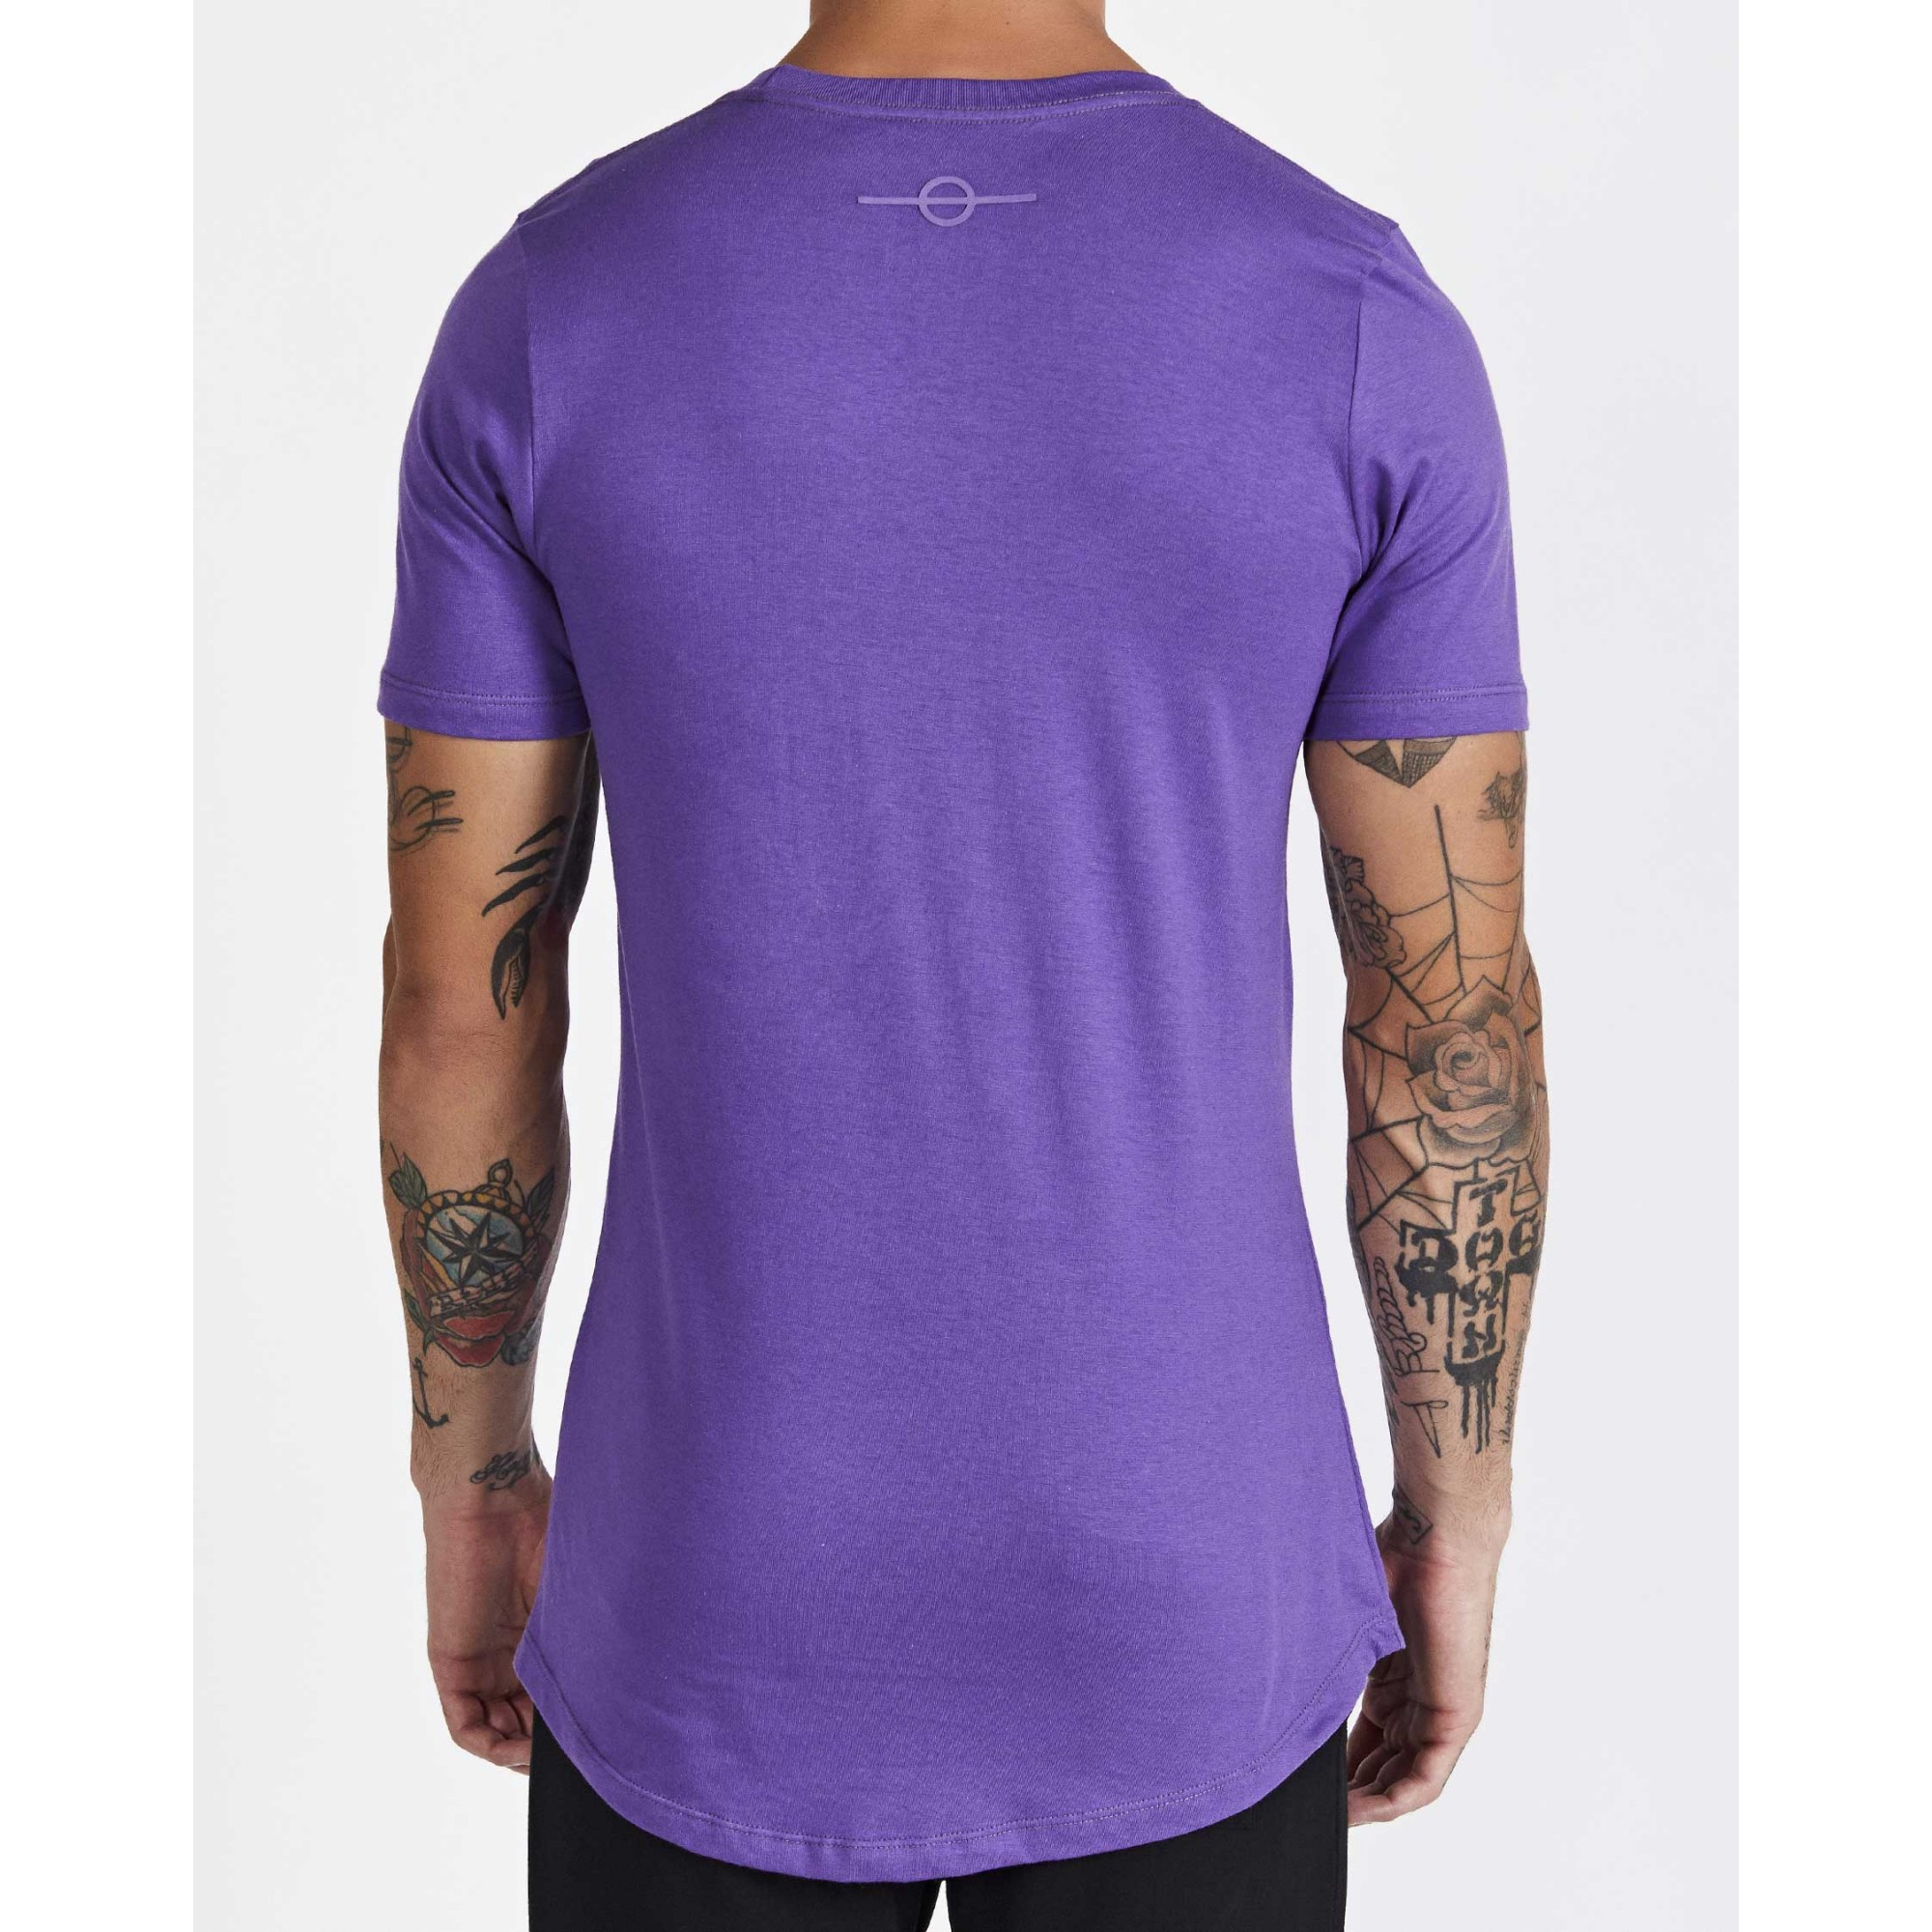 Camiseta Buh Relevo Purple